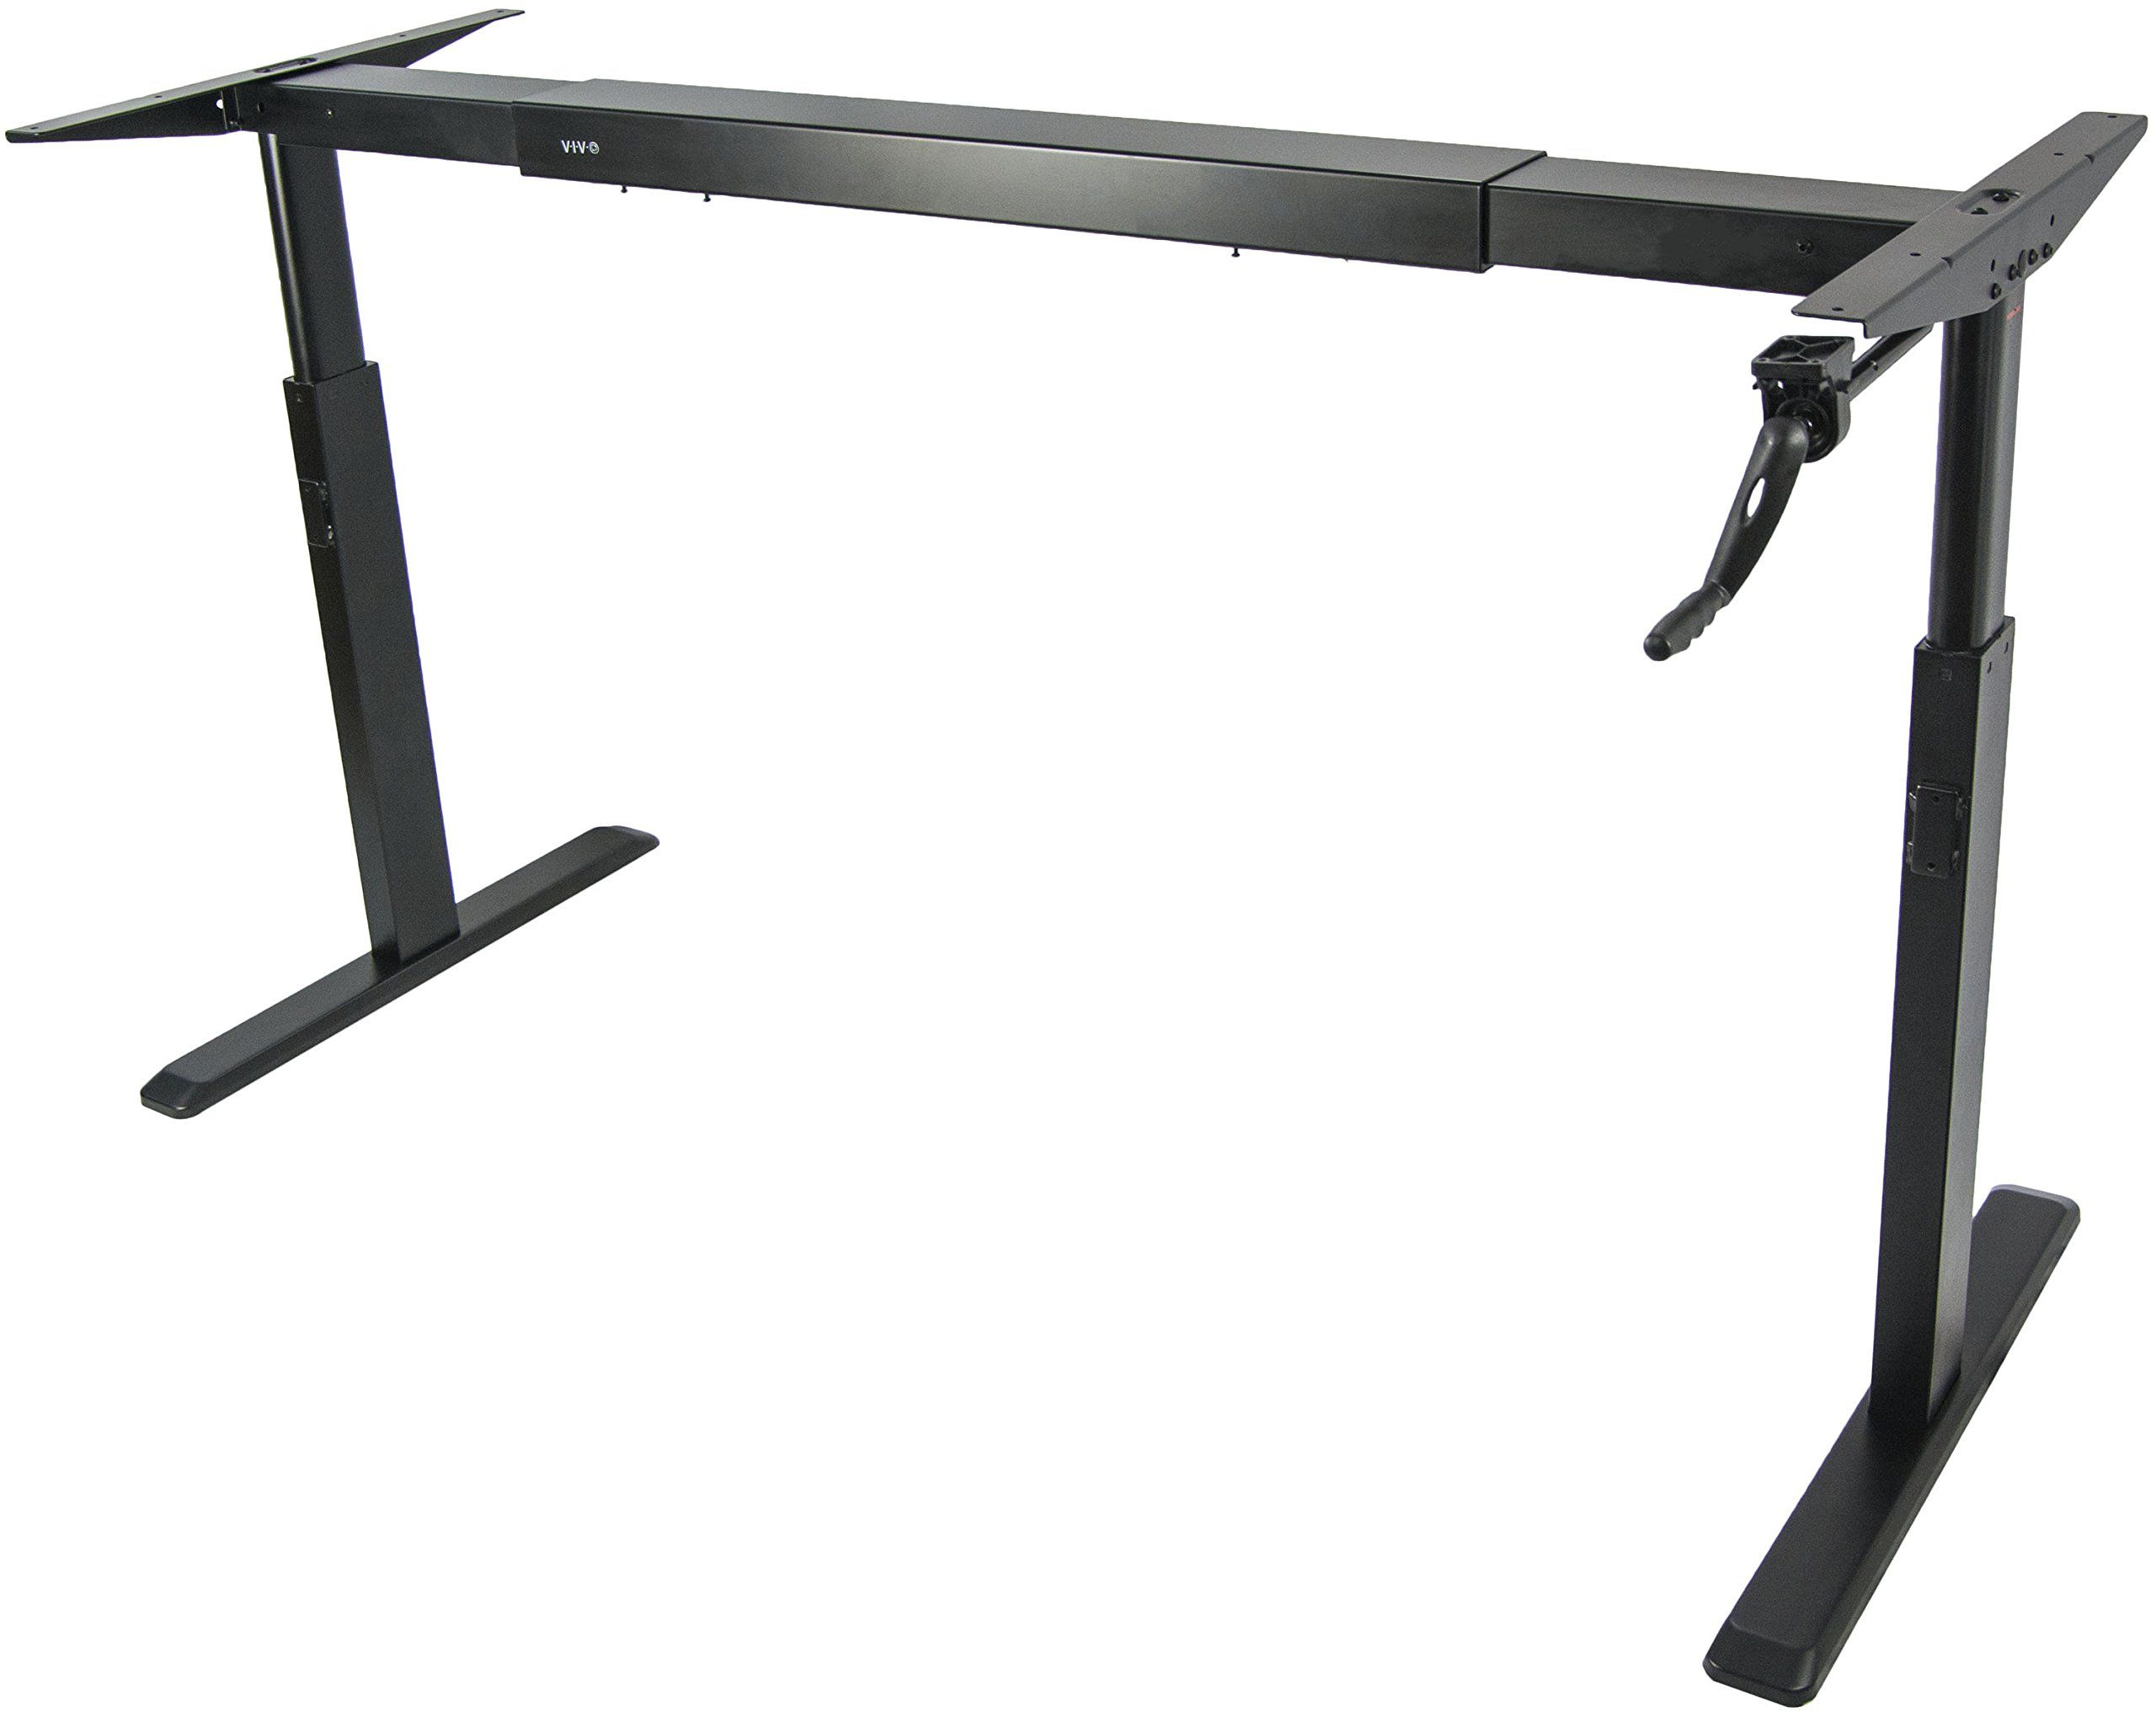 desks electric full modern affordable desktop the stand workstation container sit computer chairs tall store elevating addition surface amazing for lift automatic size crank raising standing work inside to reviews office of height espresso table topper ergonomic up adjustable desk